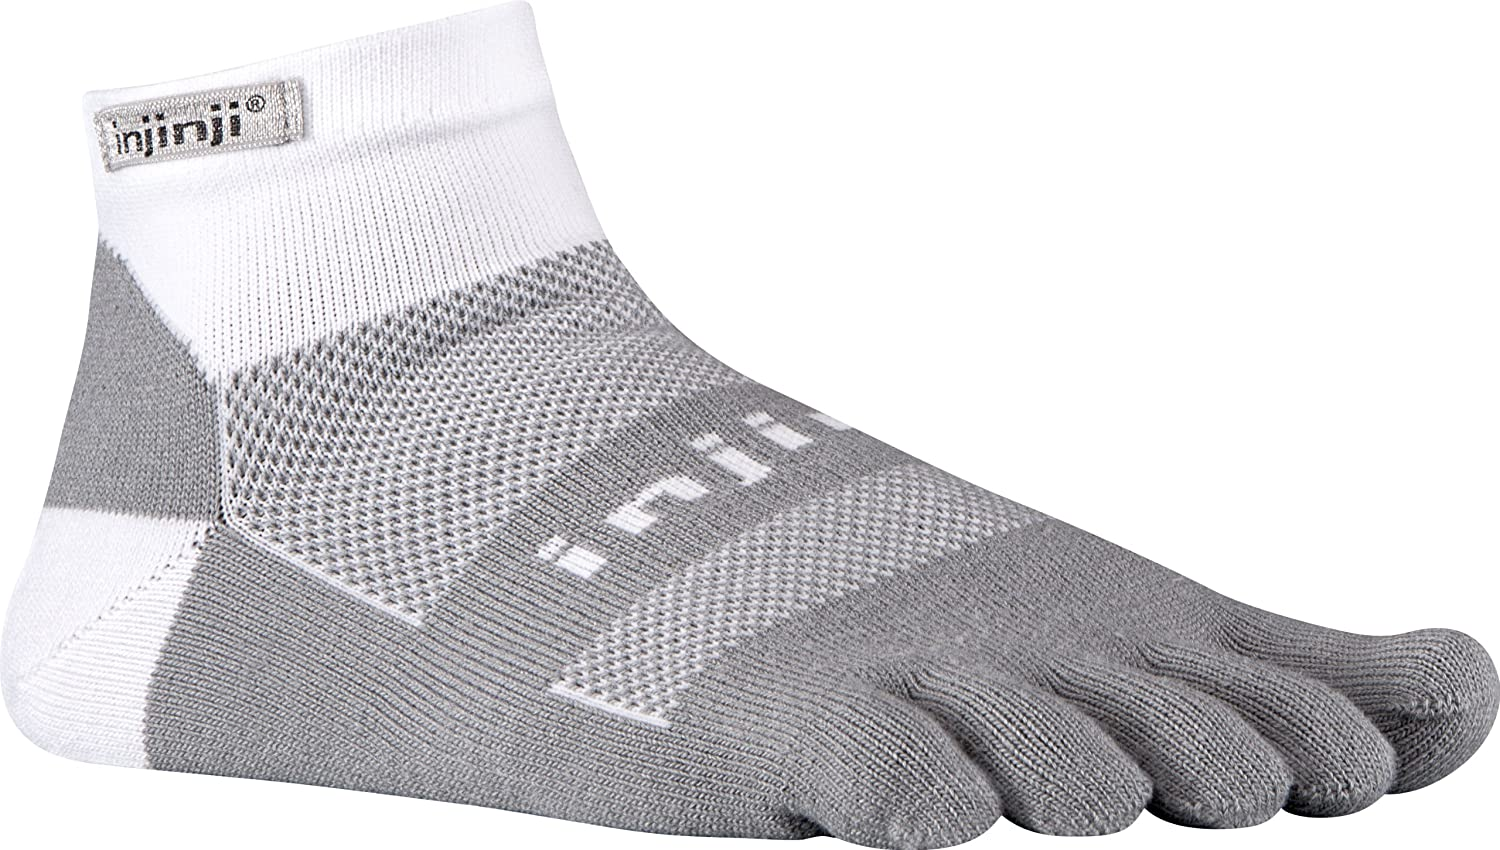 Injinji 2.0 Mens Run Midweight No Show Toesocks, White/Gray, Small: Amazon.es: Deportes y aire libre